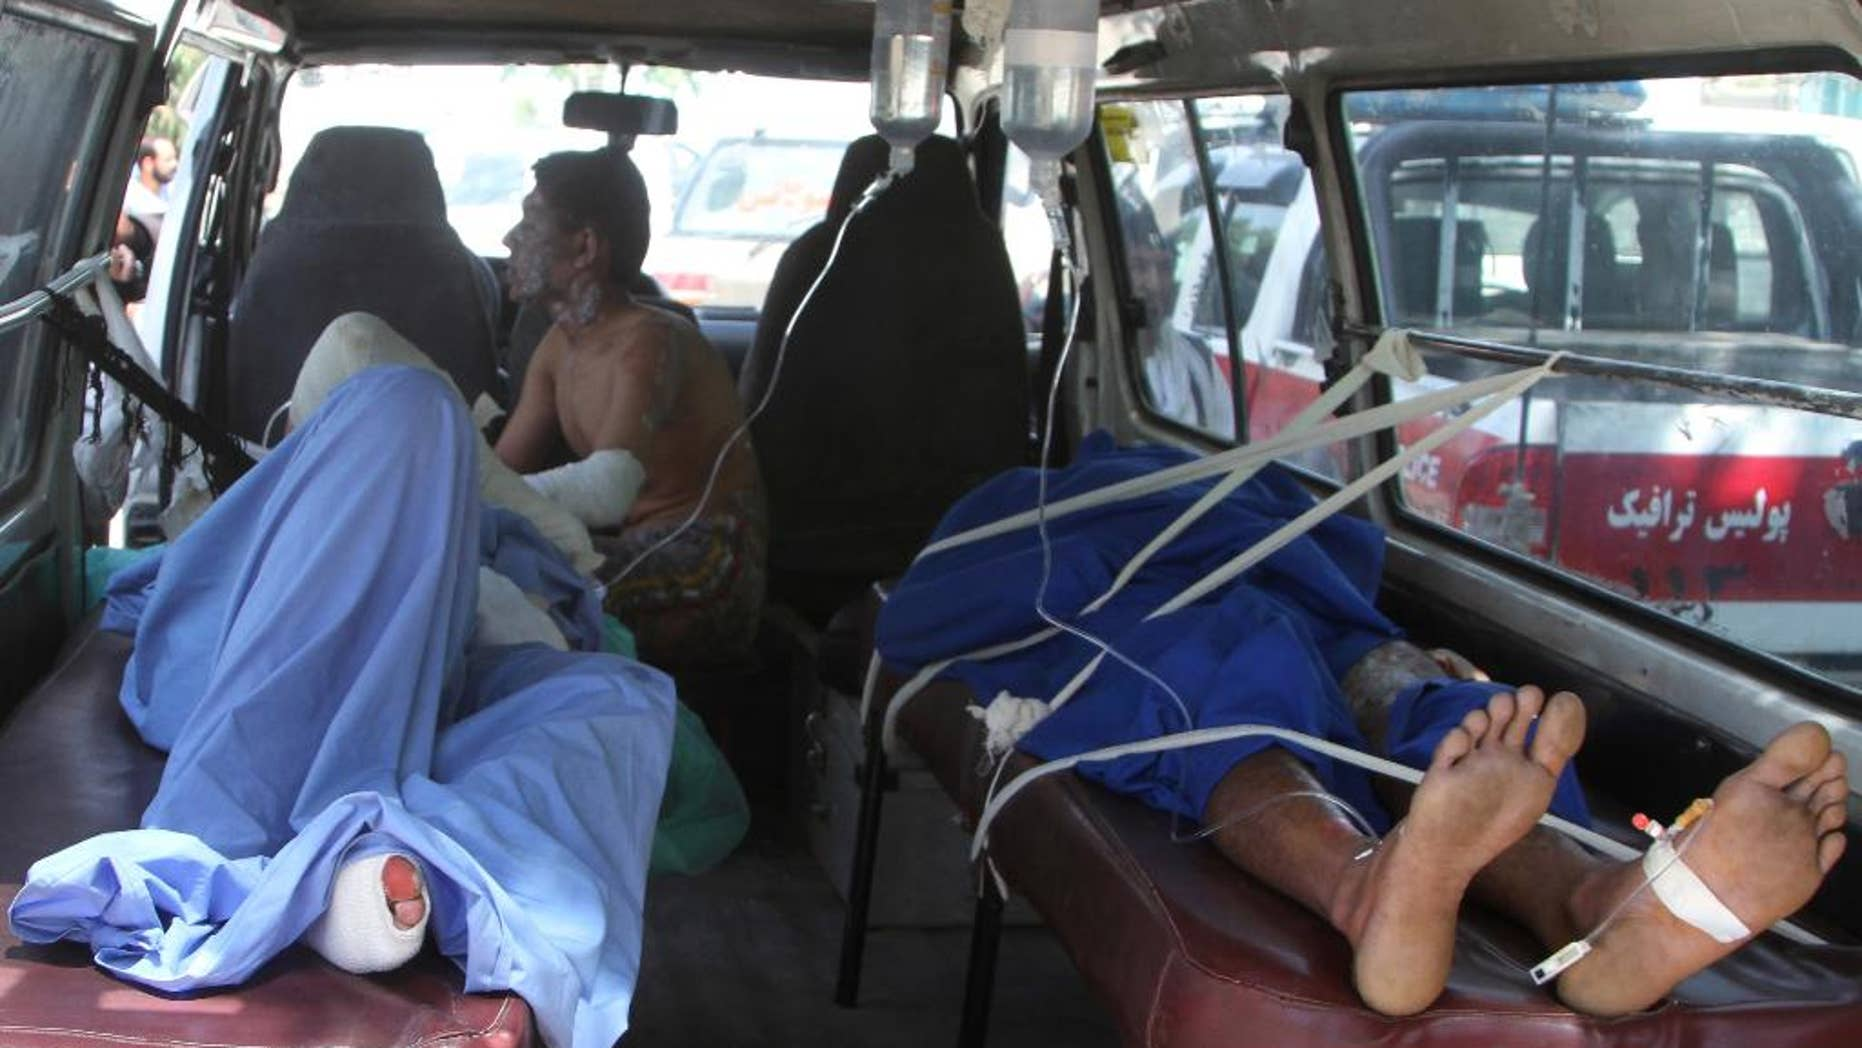 Injured Afghan men lie in an ambulance after an accident on the main highway linking the capital, Kabul, to the southern city of Kandahar, in Ghazni province eastern of Kabul, Afghanistan, Sunday, May 8, 2016. Officials say two buses and a fuel tanker have collided on a major highway in Afghanistan, killing at least 14 people. Dozens more people were wounded in the accident, which set all three vehicles ablaze, and the death toll is expected to rise. (AP Photo/Rahmatullah Nikzad)